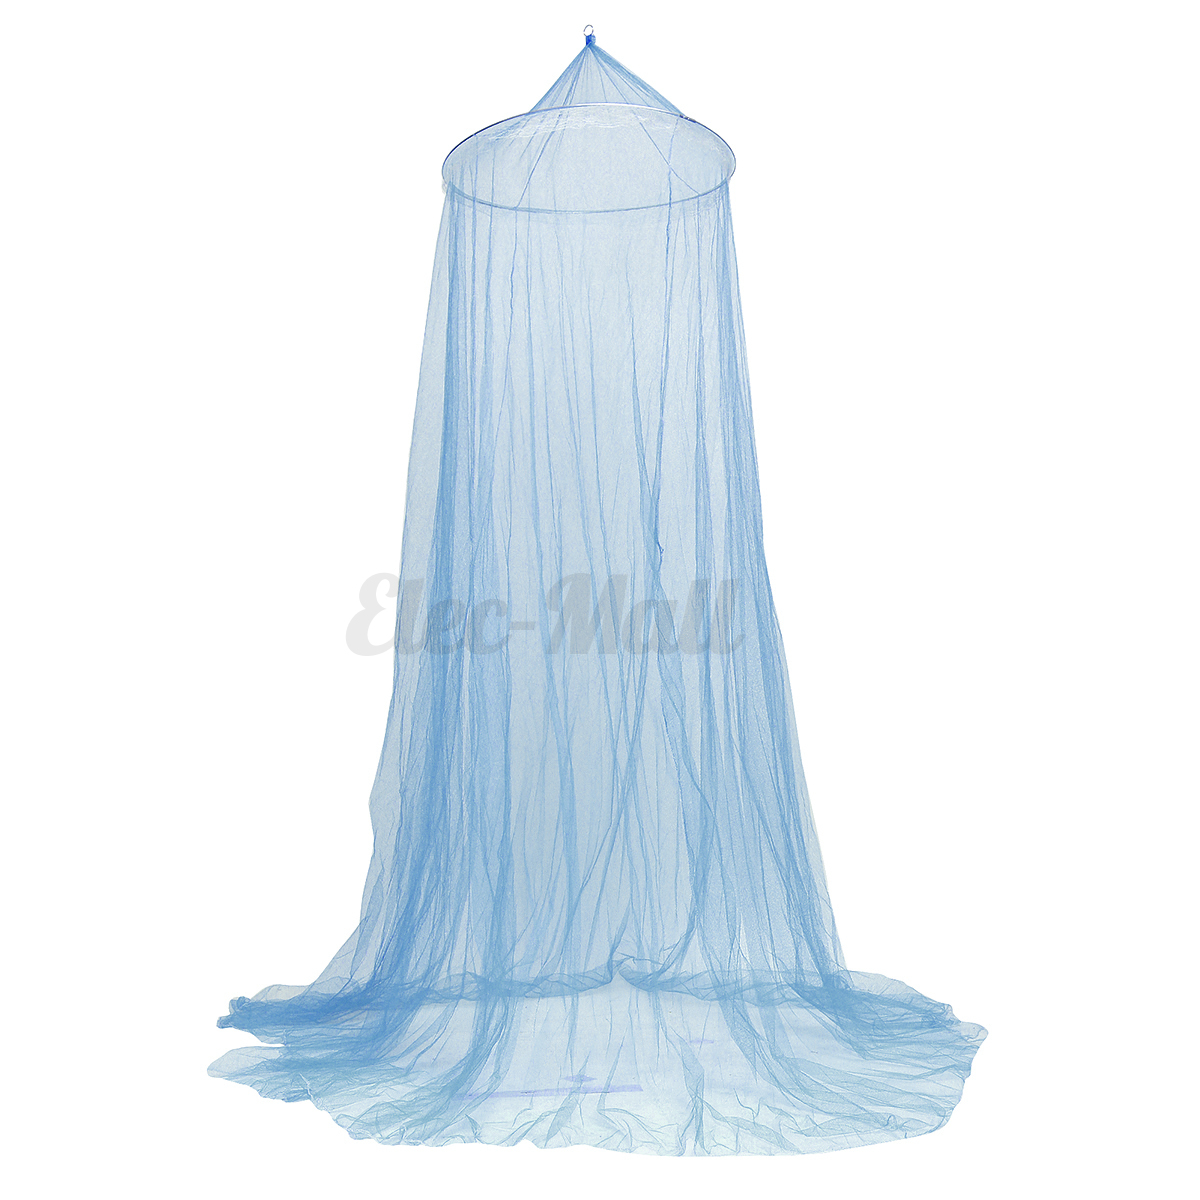 Mosquito Net Fly Insect Protection Bed Outdoor Canopy